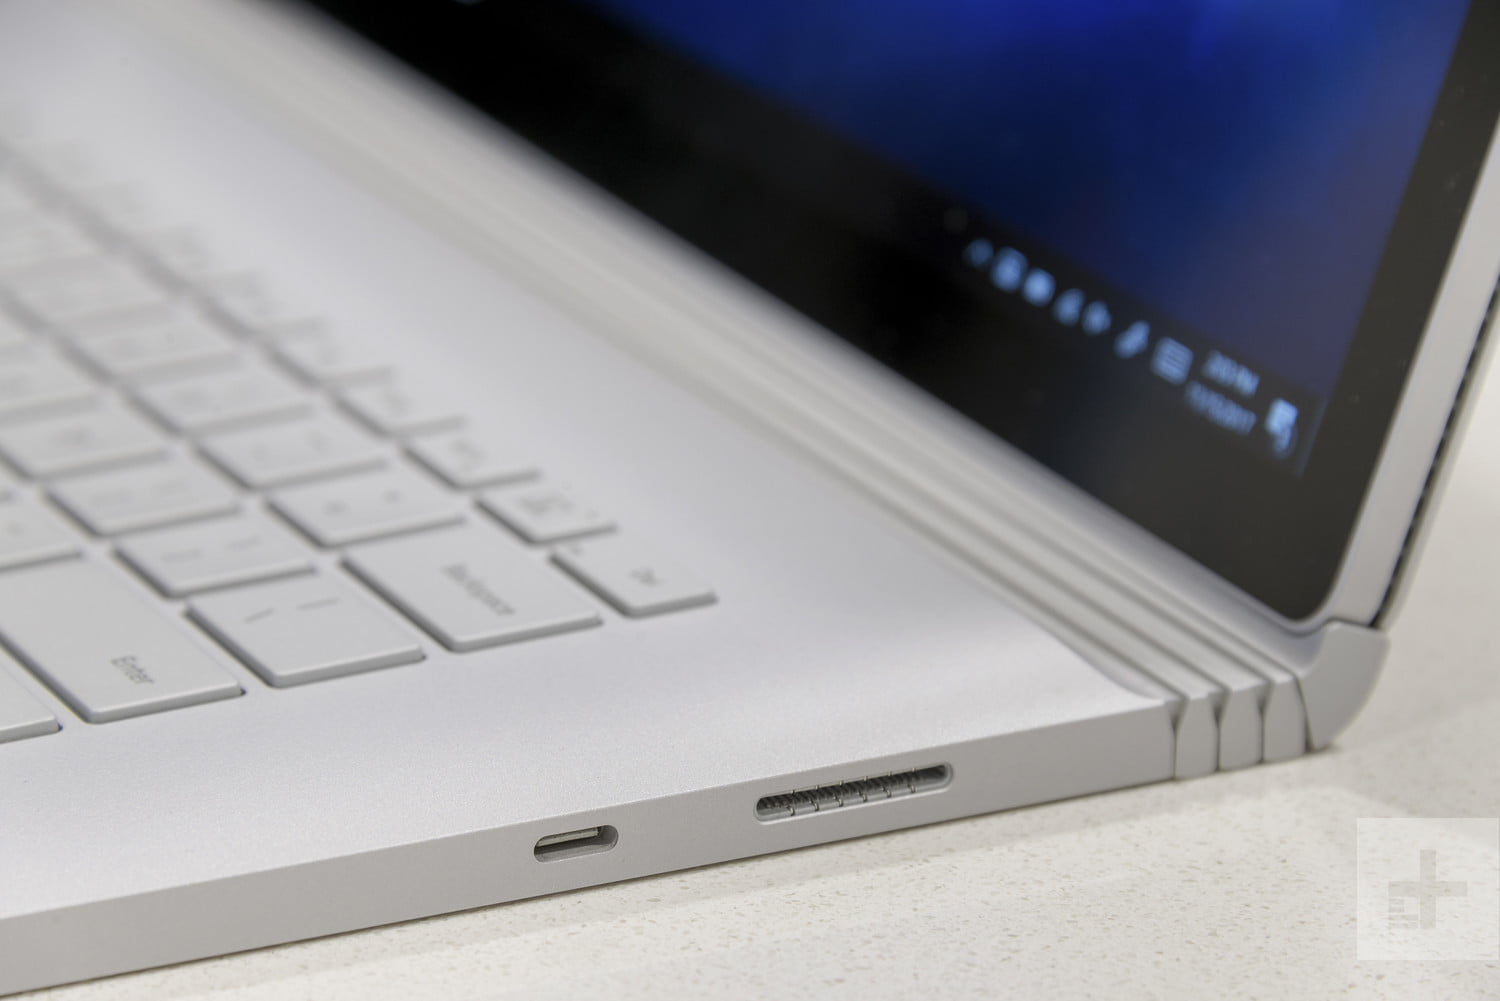 USB-C was supposed to be a port paradise, but it's become a nightmare